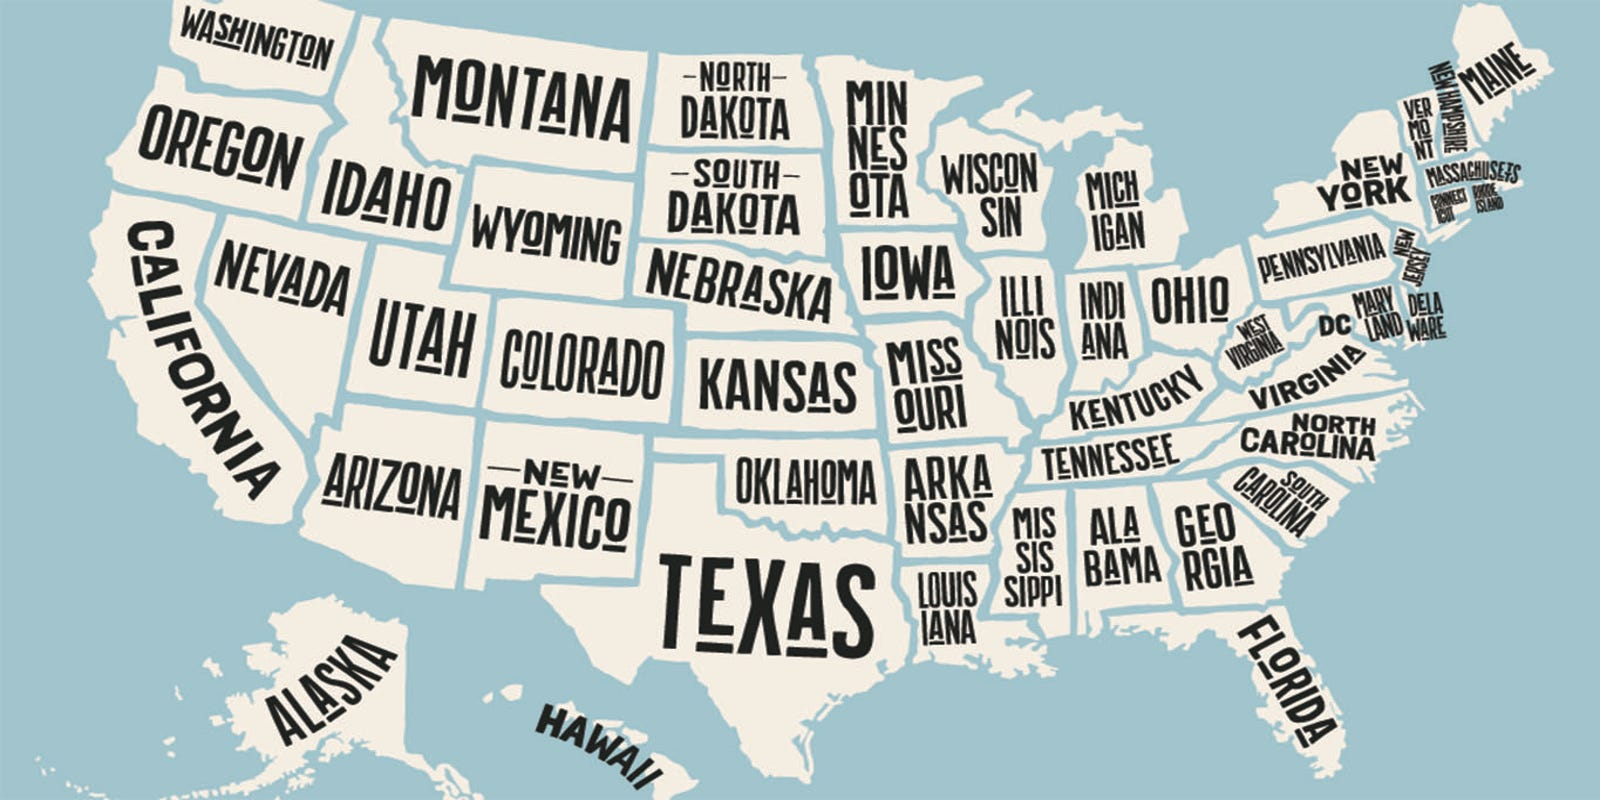 About half of America's states owe their names to Native American origin: Here's how each state got its name